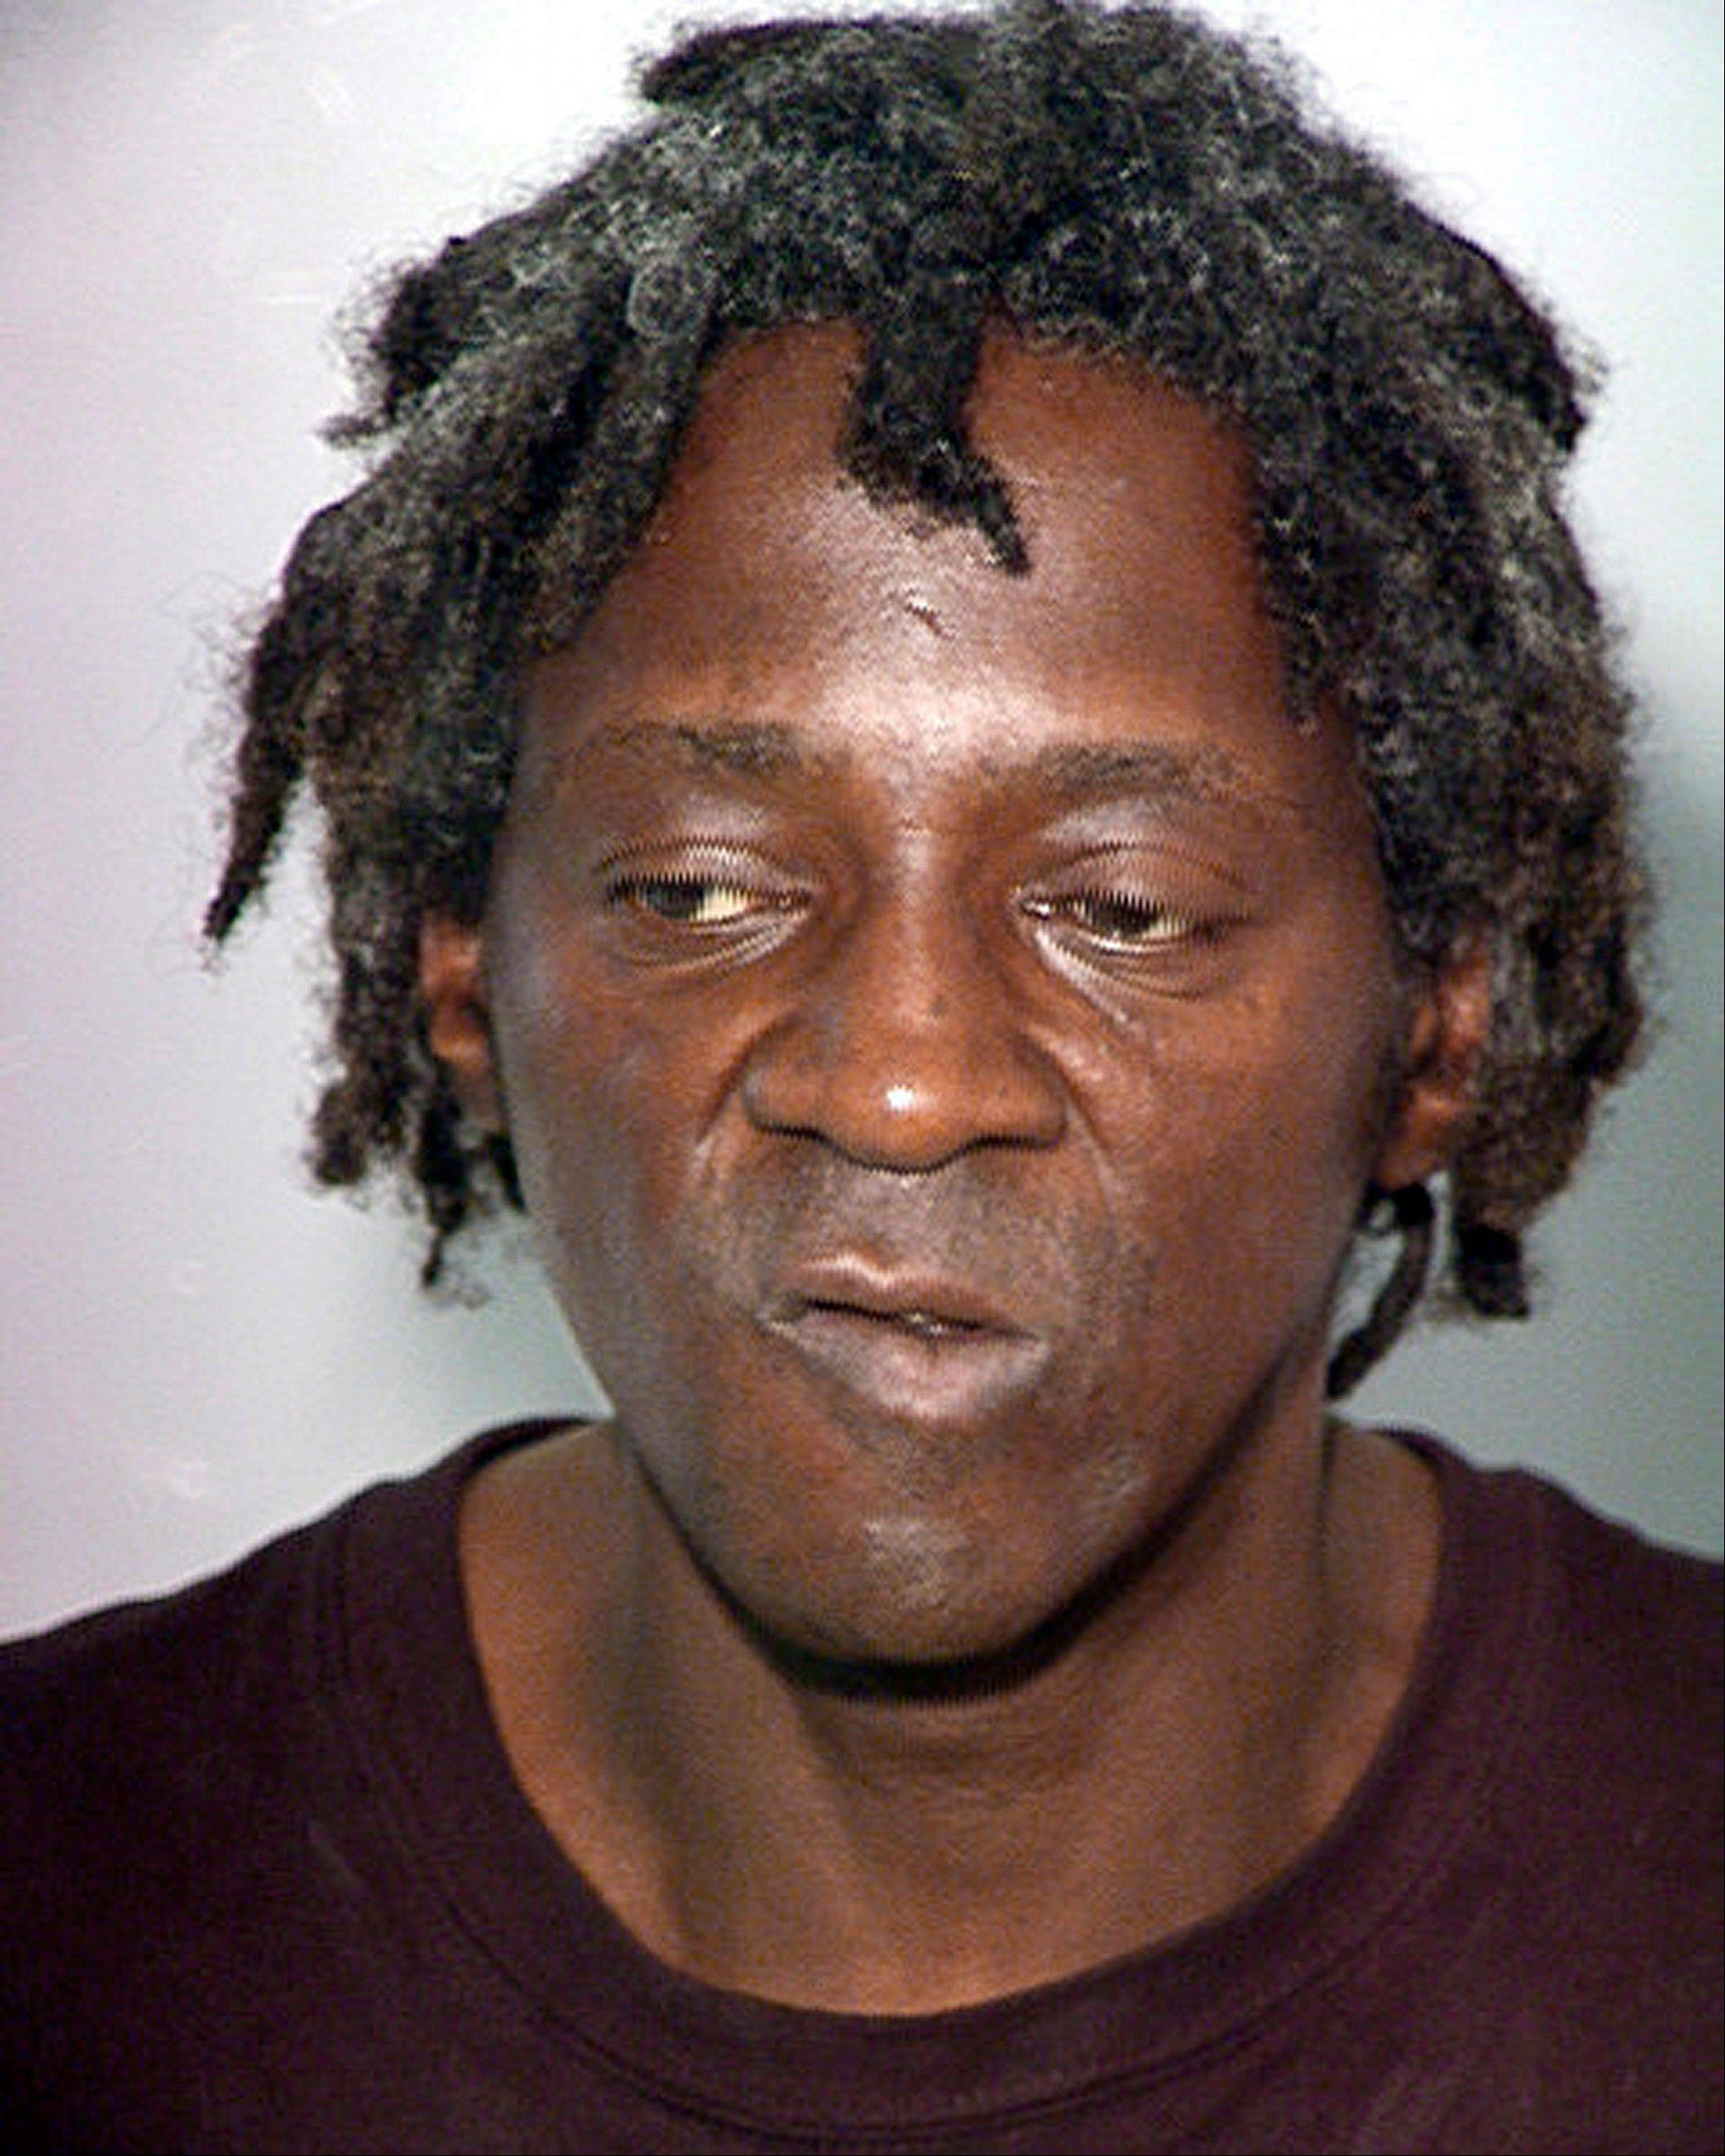 FILE -This Oct. 17, 2012, file photo provided by the Las Vegas Police Department, shows rapper Flavor Flav, whose real name is William Jonathan Drayton Jr. New York State police say rapper and Rock and Roll Hall of Famer was ticketed for speeding and driving without a license while en route to his mother�s funeral in suburban New York, Thursday, Jan. 9, 2014. (AP Photo/Las Vegas Police Department, File)